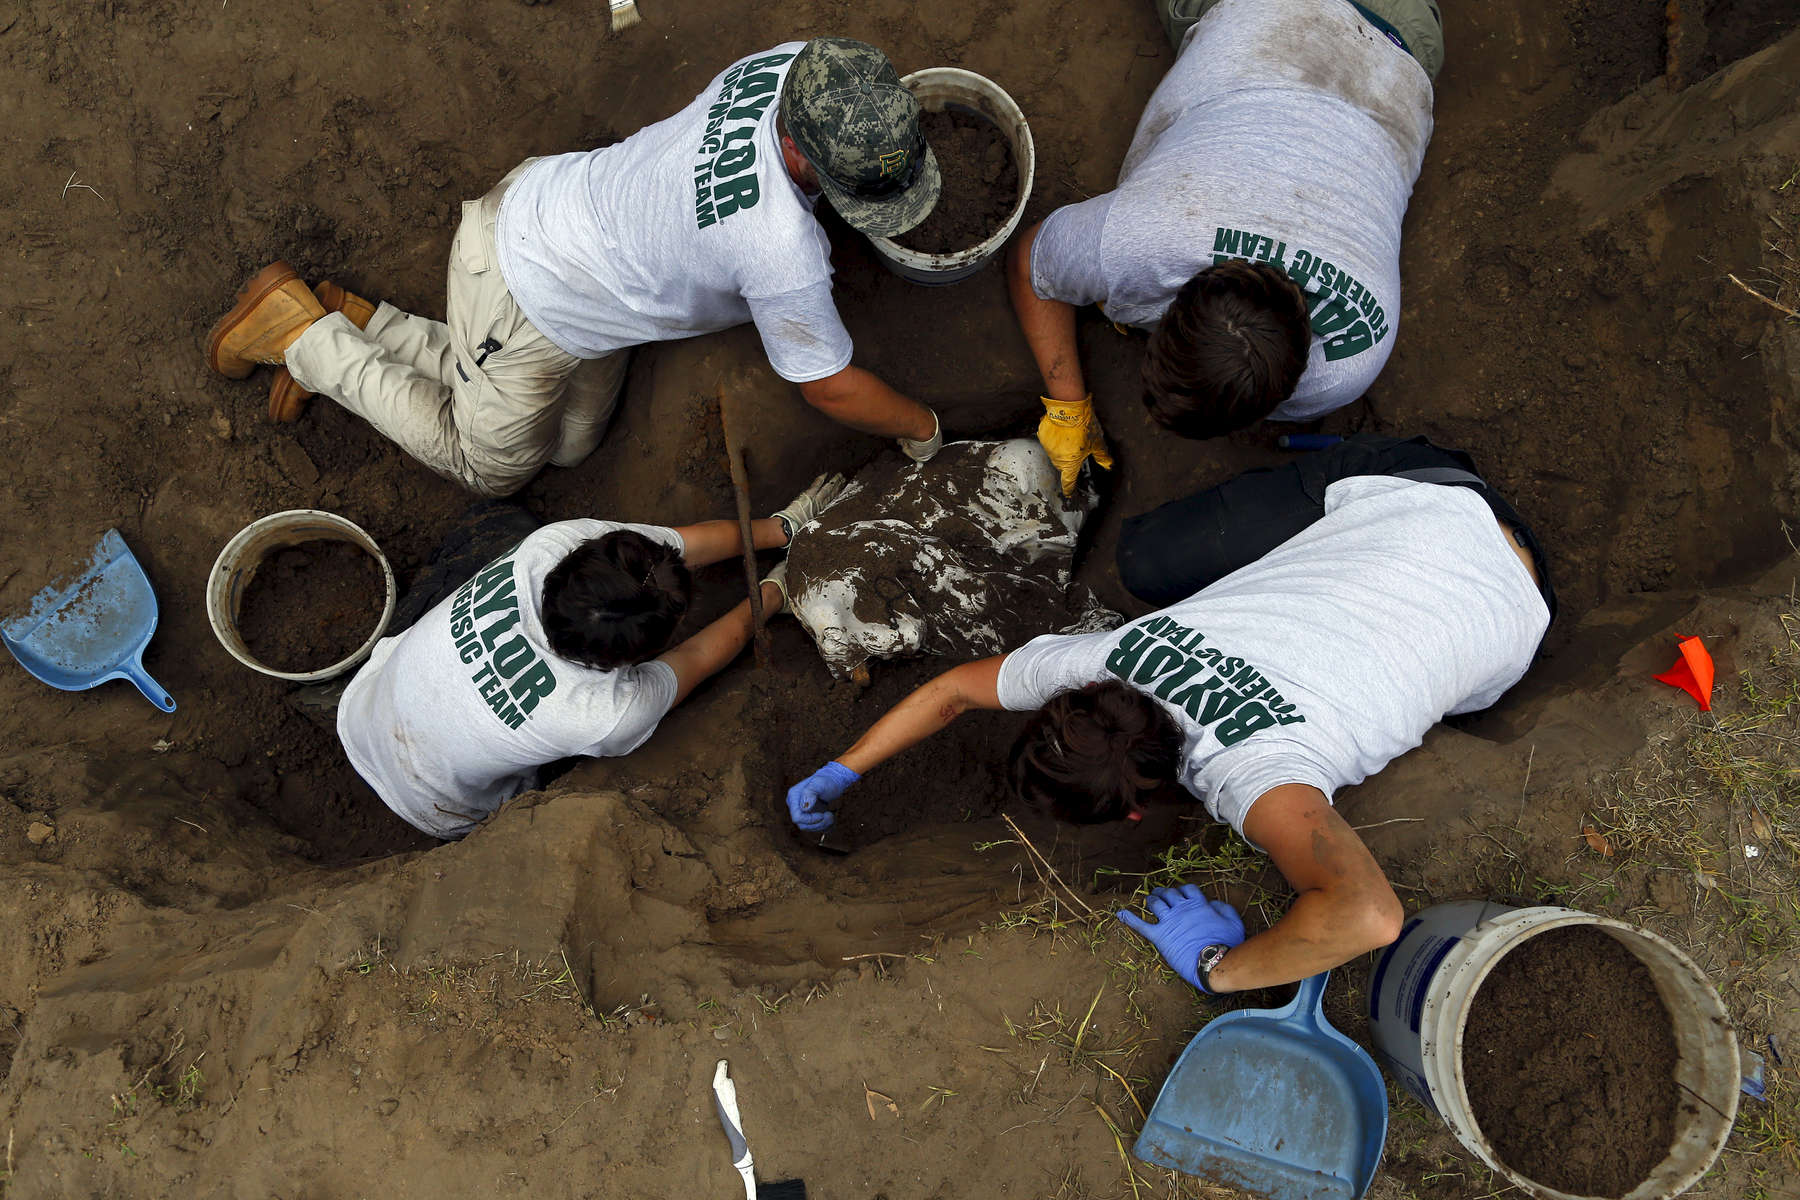 In 2012, 129 bodies were found in Brooks County, more than half were unidentified. The following year officials discovered 87 bodies, and 44 percent were unidentified. Here members of the Baylor forensics team carefully remove the dirt surrounding a body as they work to exhume it in Falfurrias, Texas June 10, 2014.